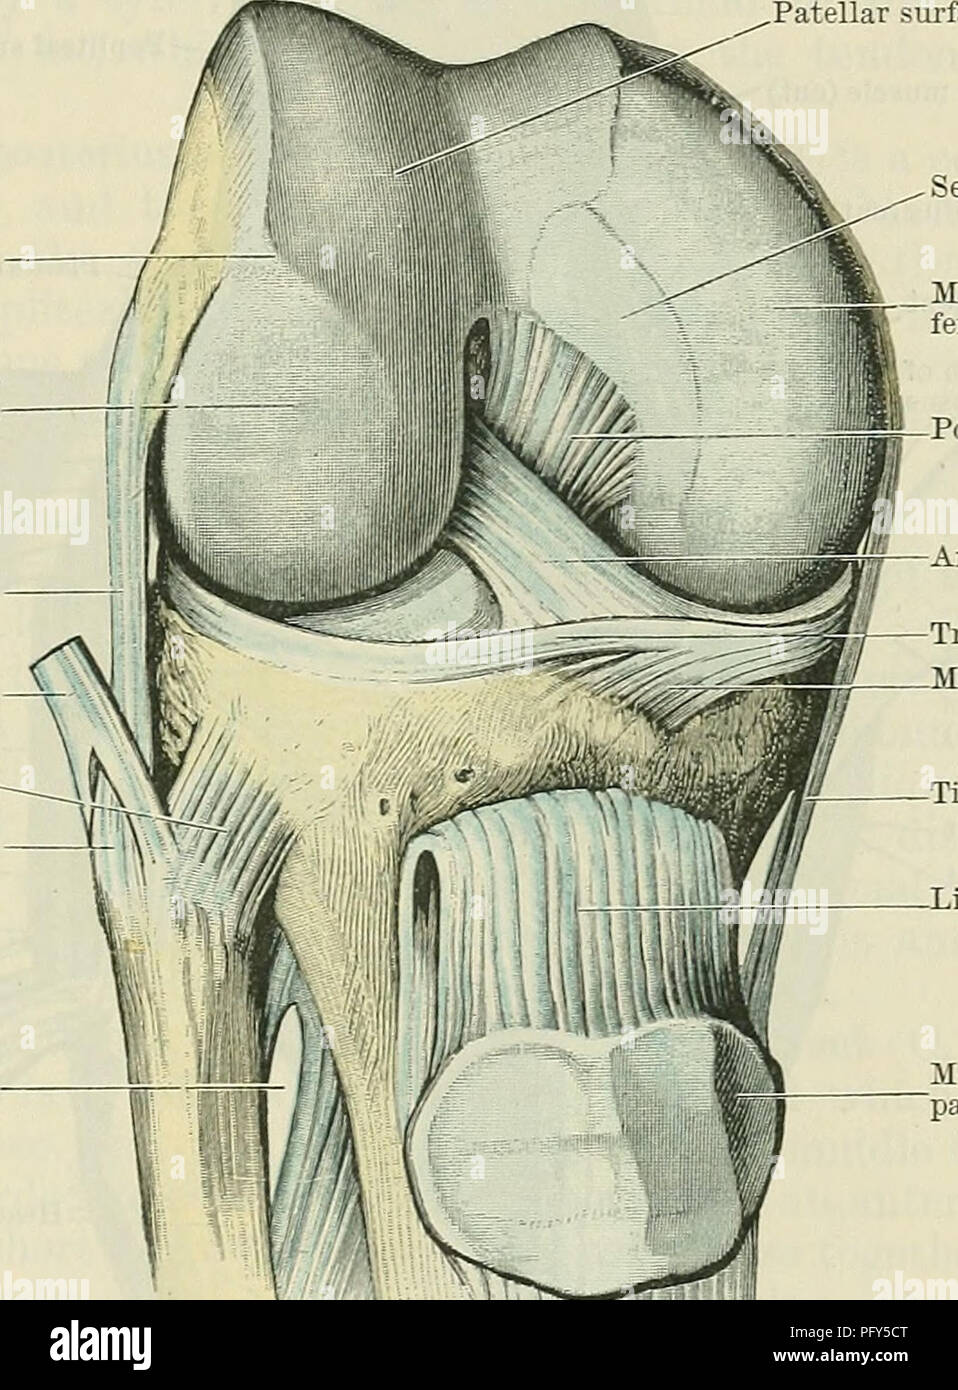 Cunninghams text book of anatomy anatomy the knee joint 343 the anatomy the knee joint 343 the patellar portion fig 317 is situated anteriorly and is common to both condyles although developed to a larger extent ccuart Choice Image